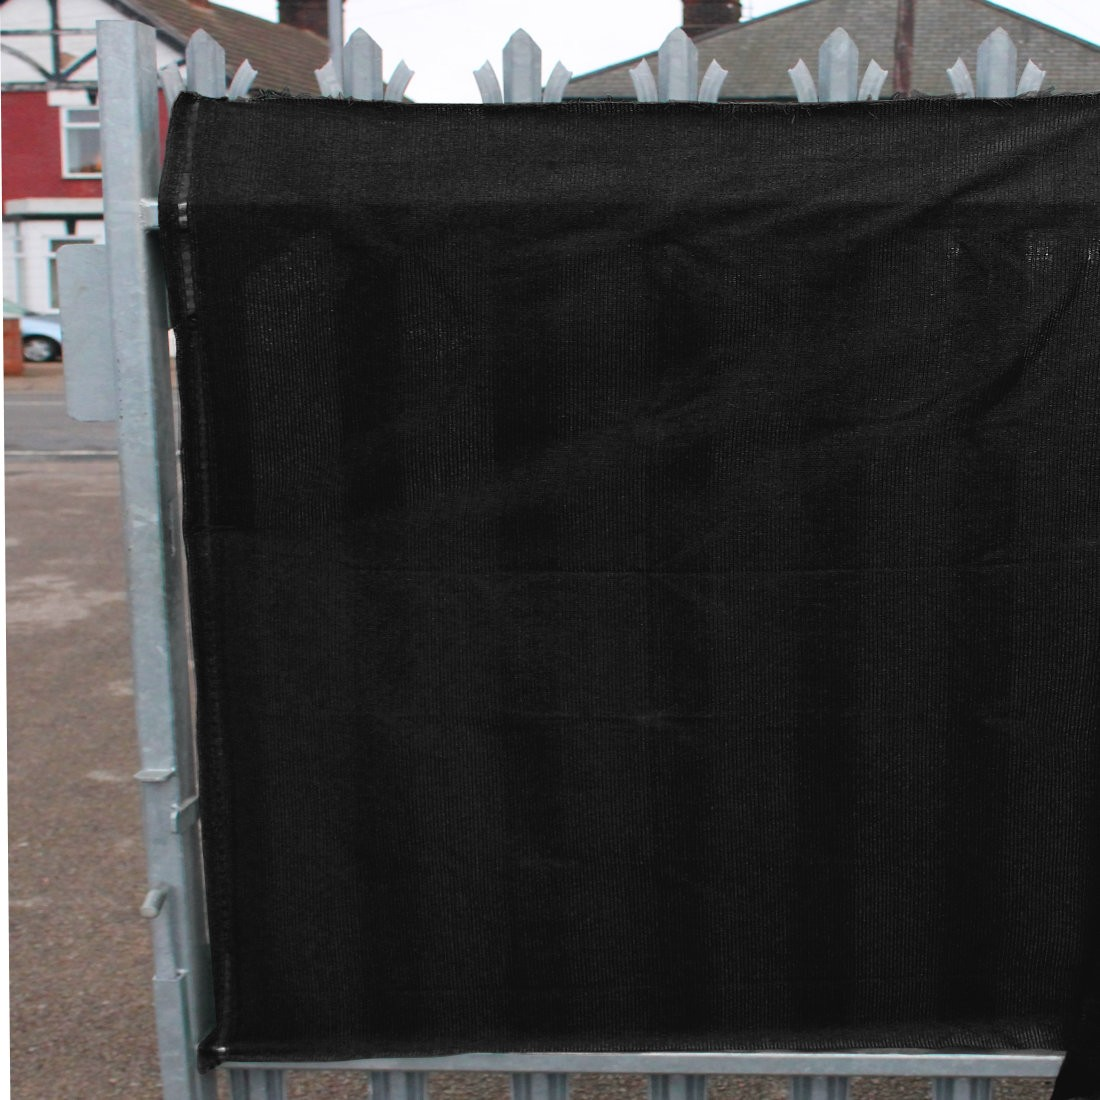 98% Black Shade Netting for Privacy